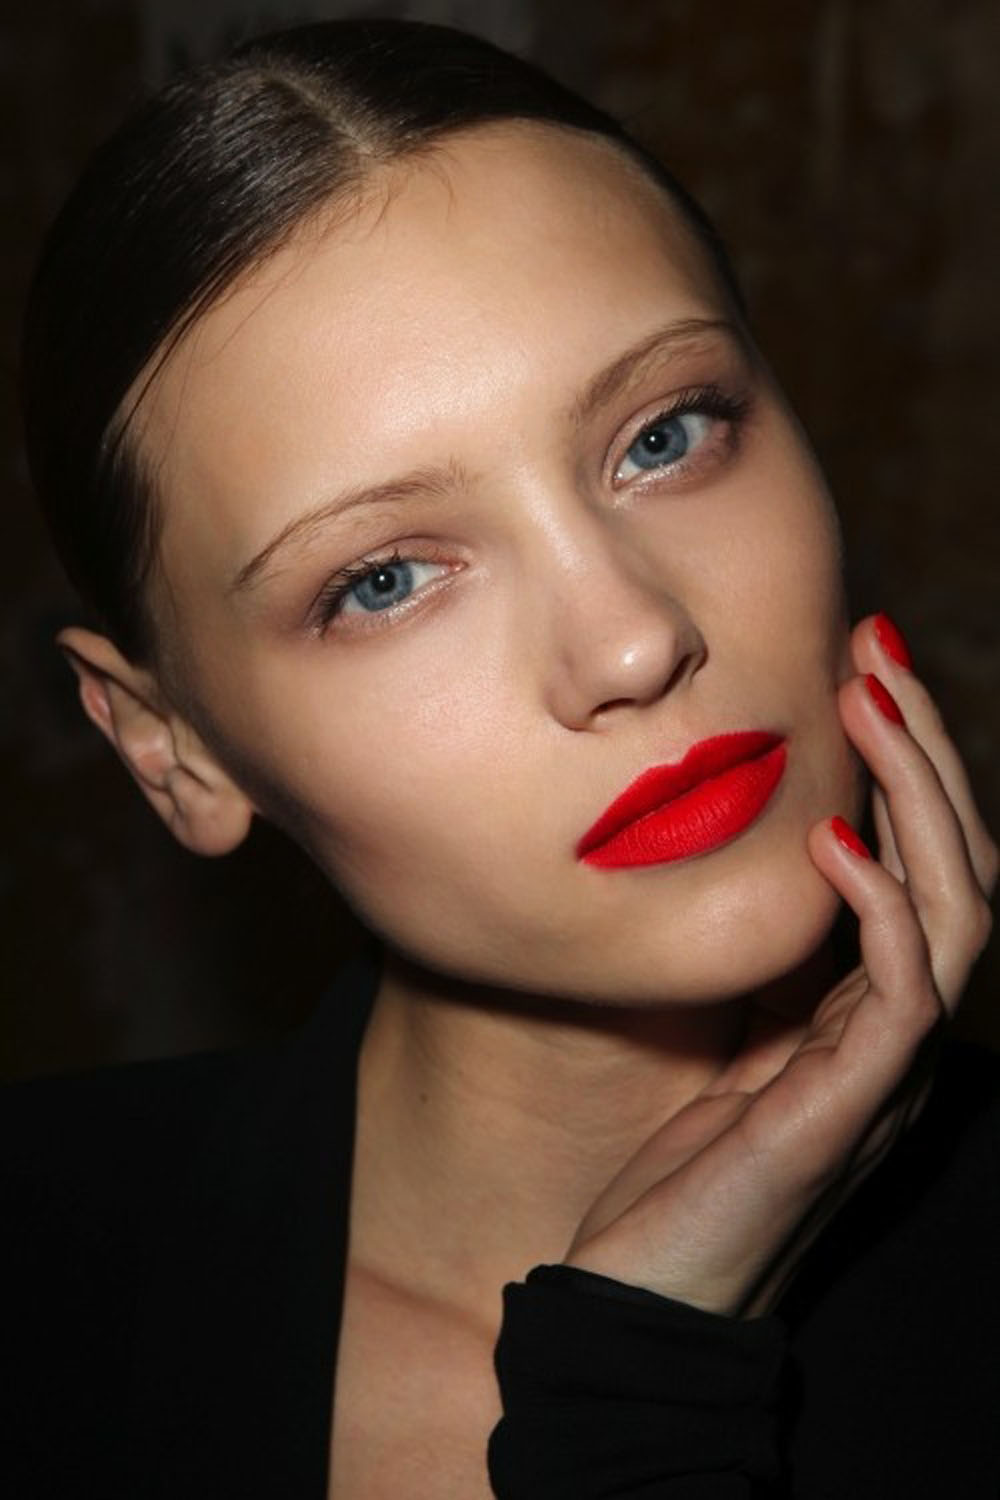 Red lipstick is a statement look, as eye-catching as a big necklace or jeweled neckline. To make it work, keep the rest of your face simple and fresh. A little concealer, a coat of mascara and a swipe of red on your lips is a bold and timeless style.